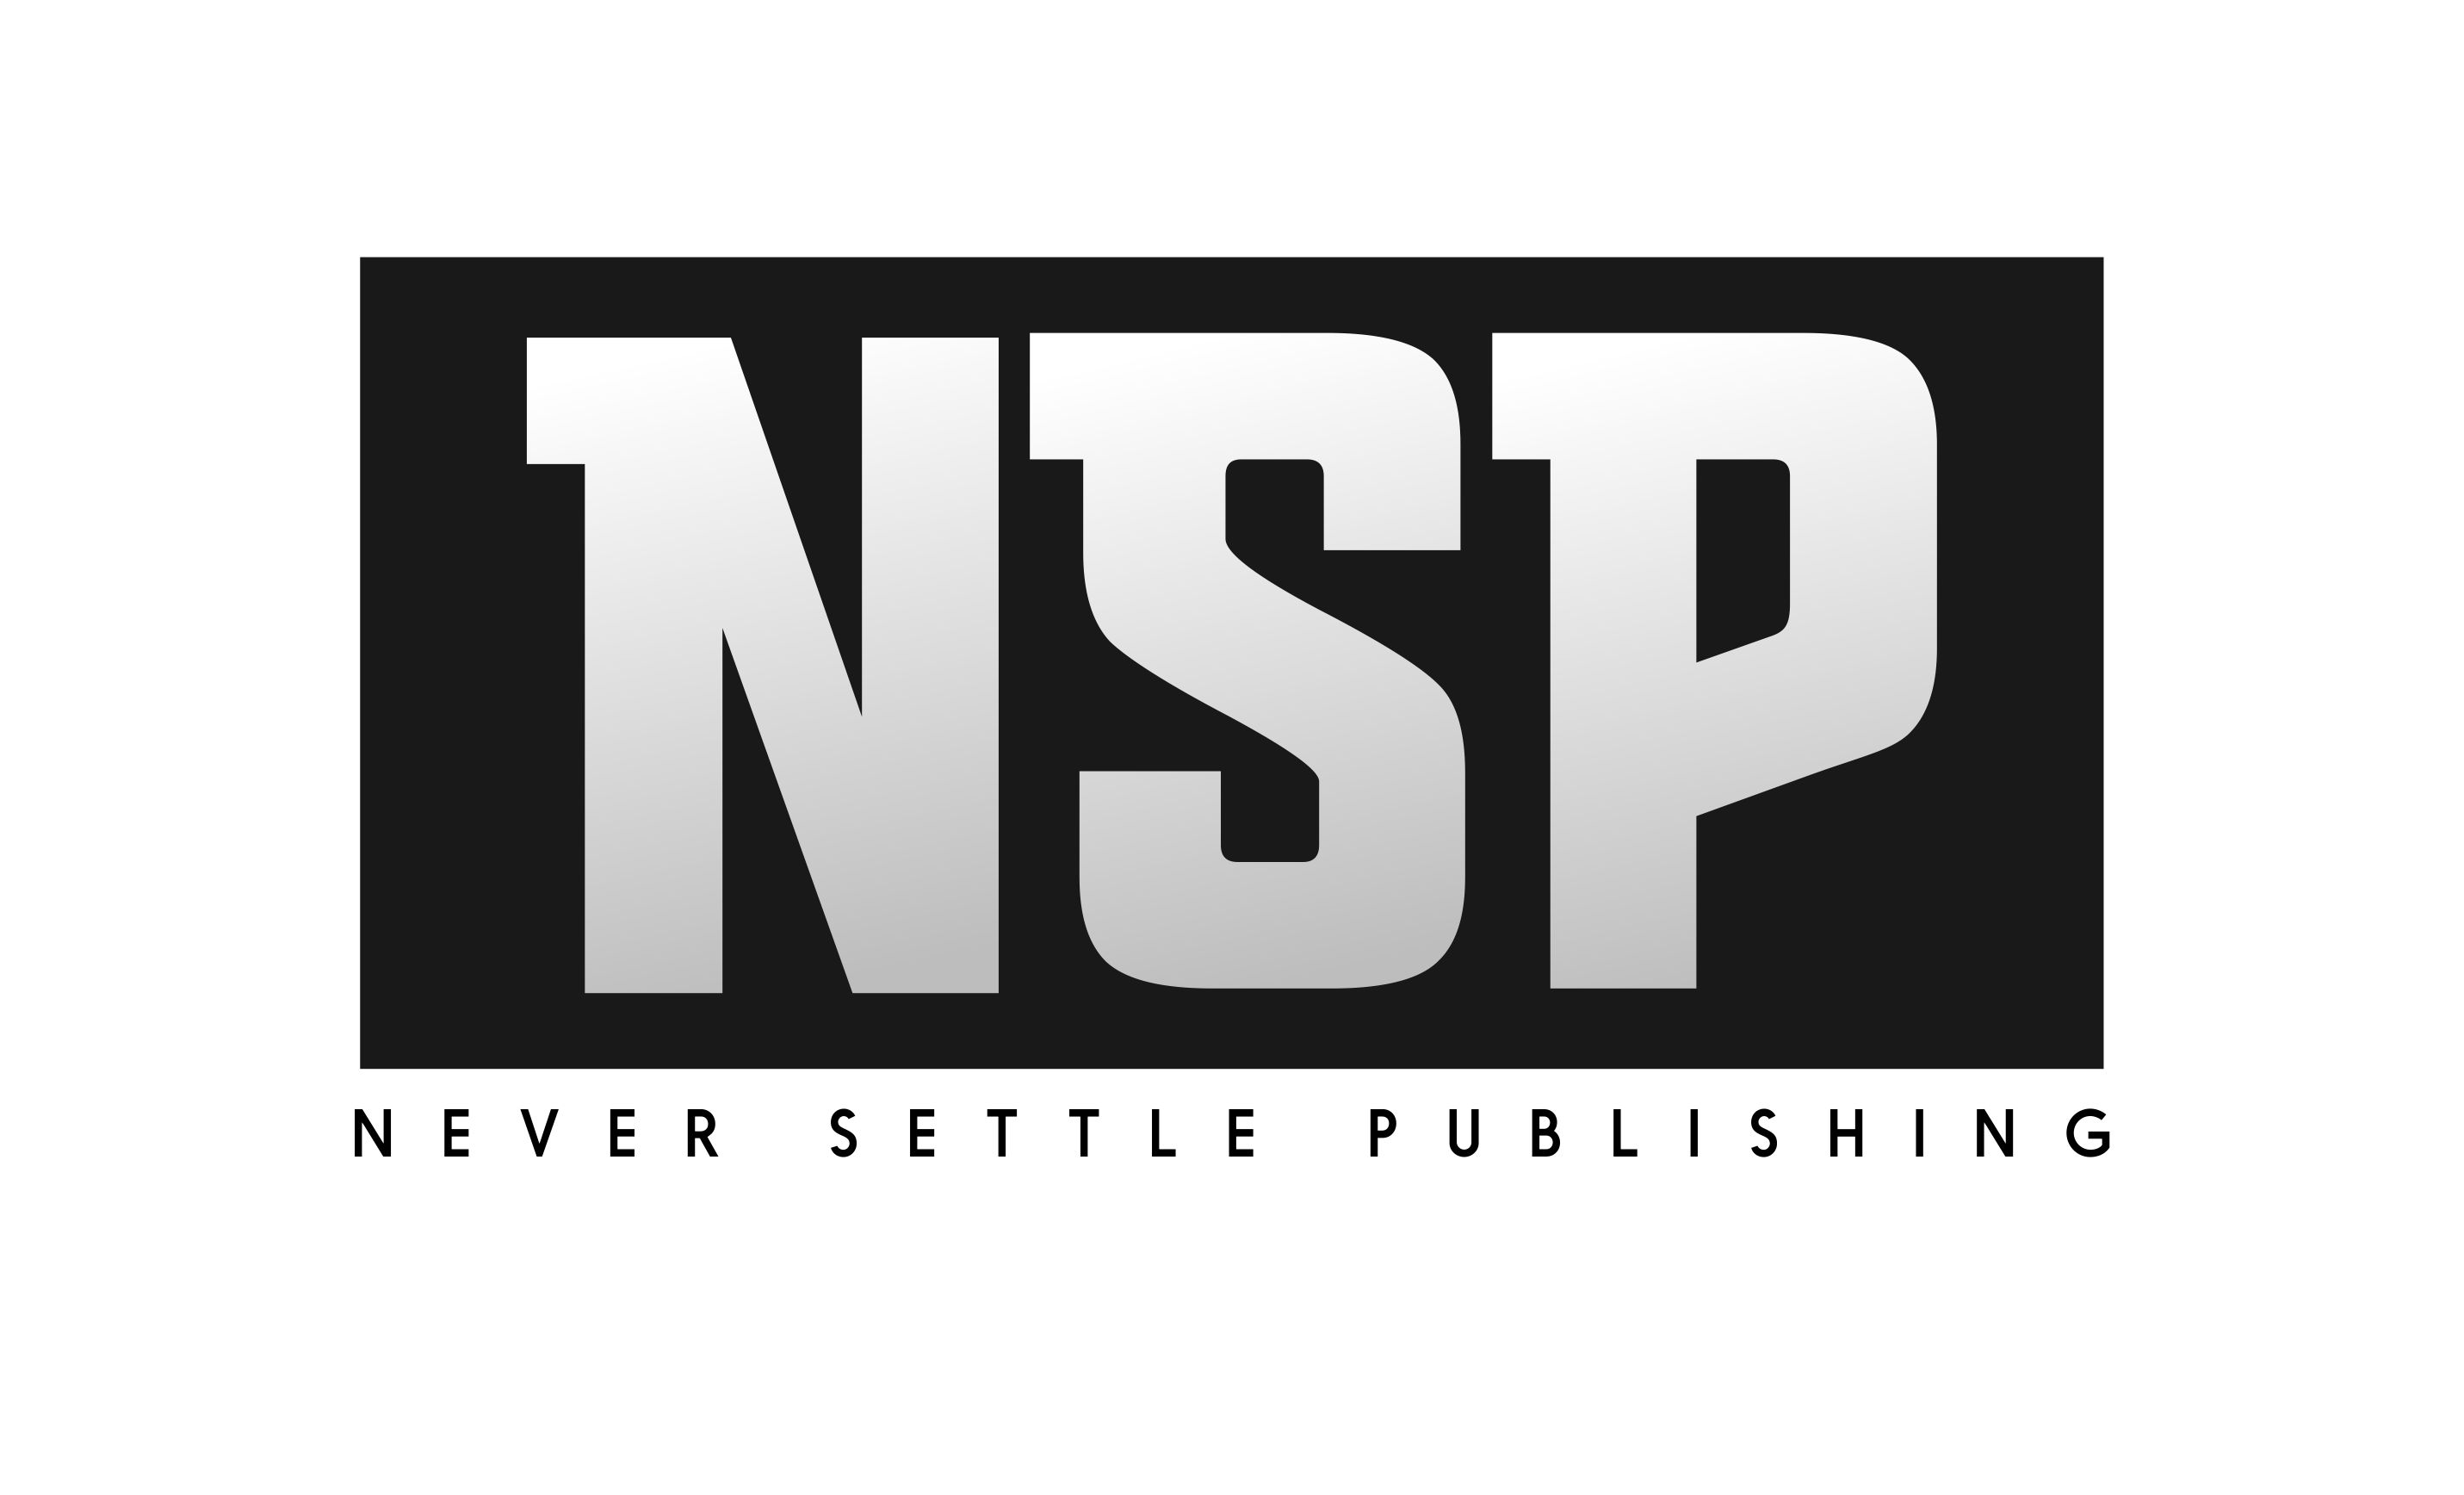 NeverSettlePublishingLogo